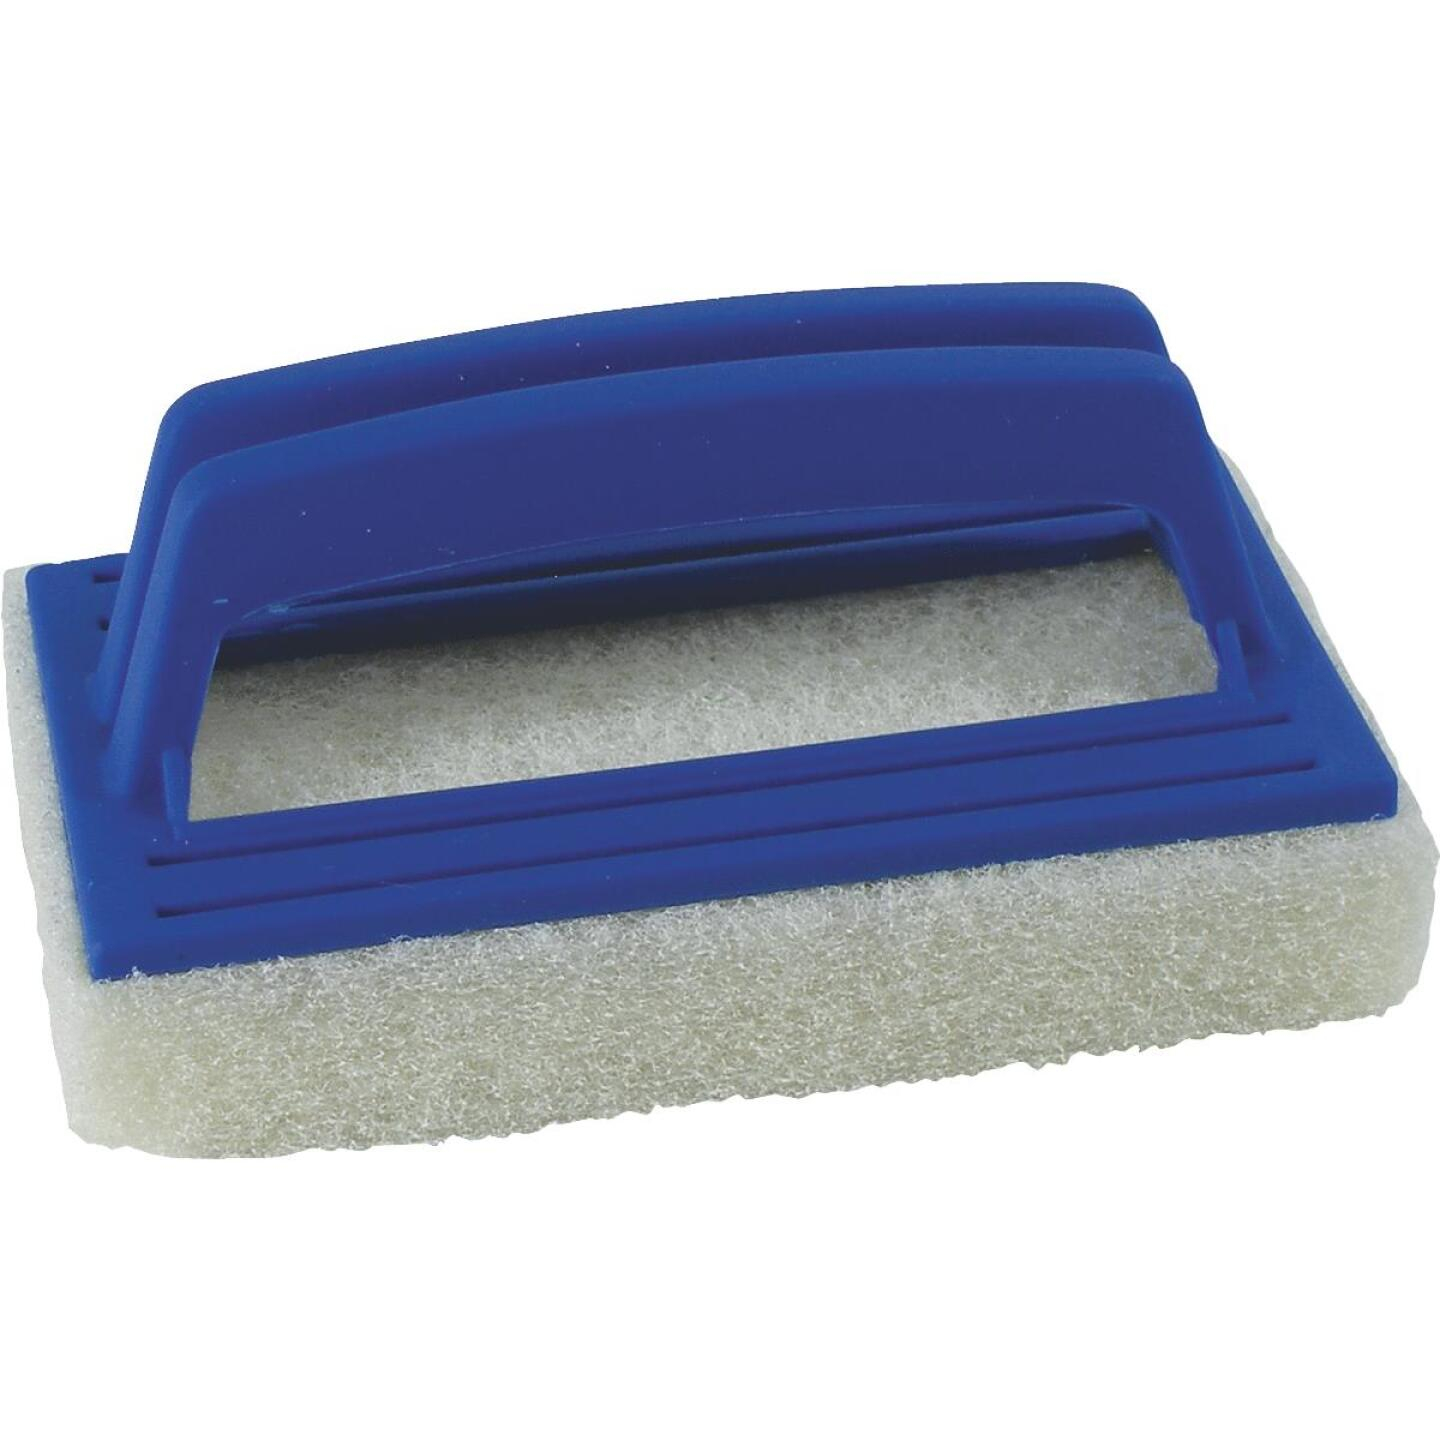 Jed Pool 5.5 In. L. Foam Scrubber Plastic Frame Multi Purpose Brush Image 1